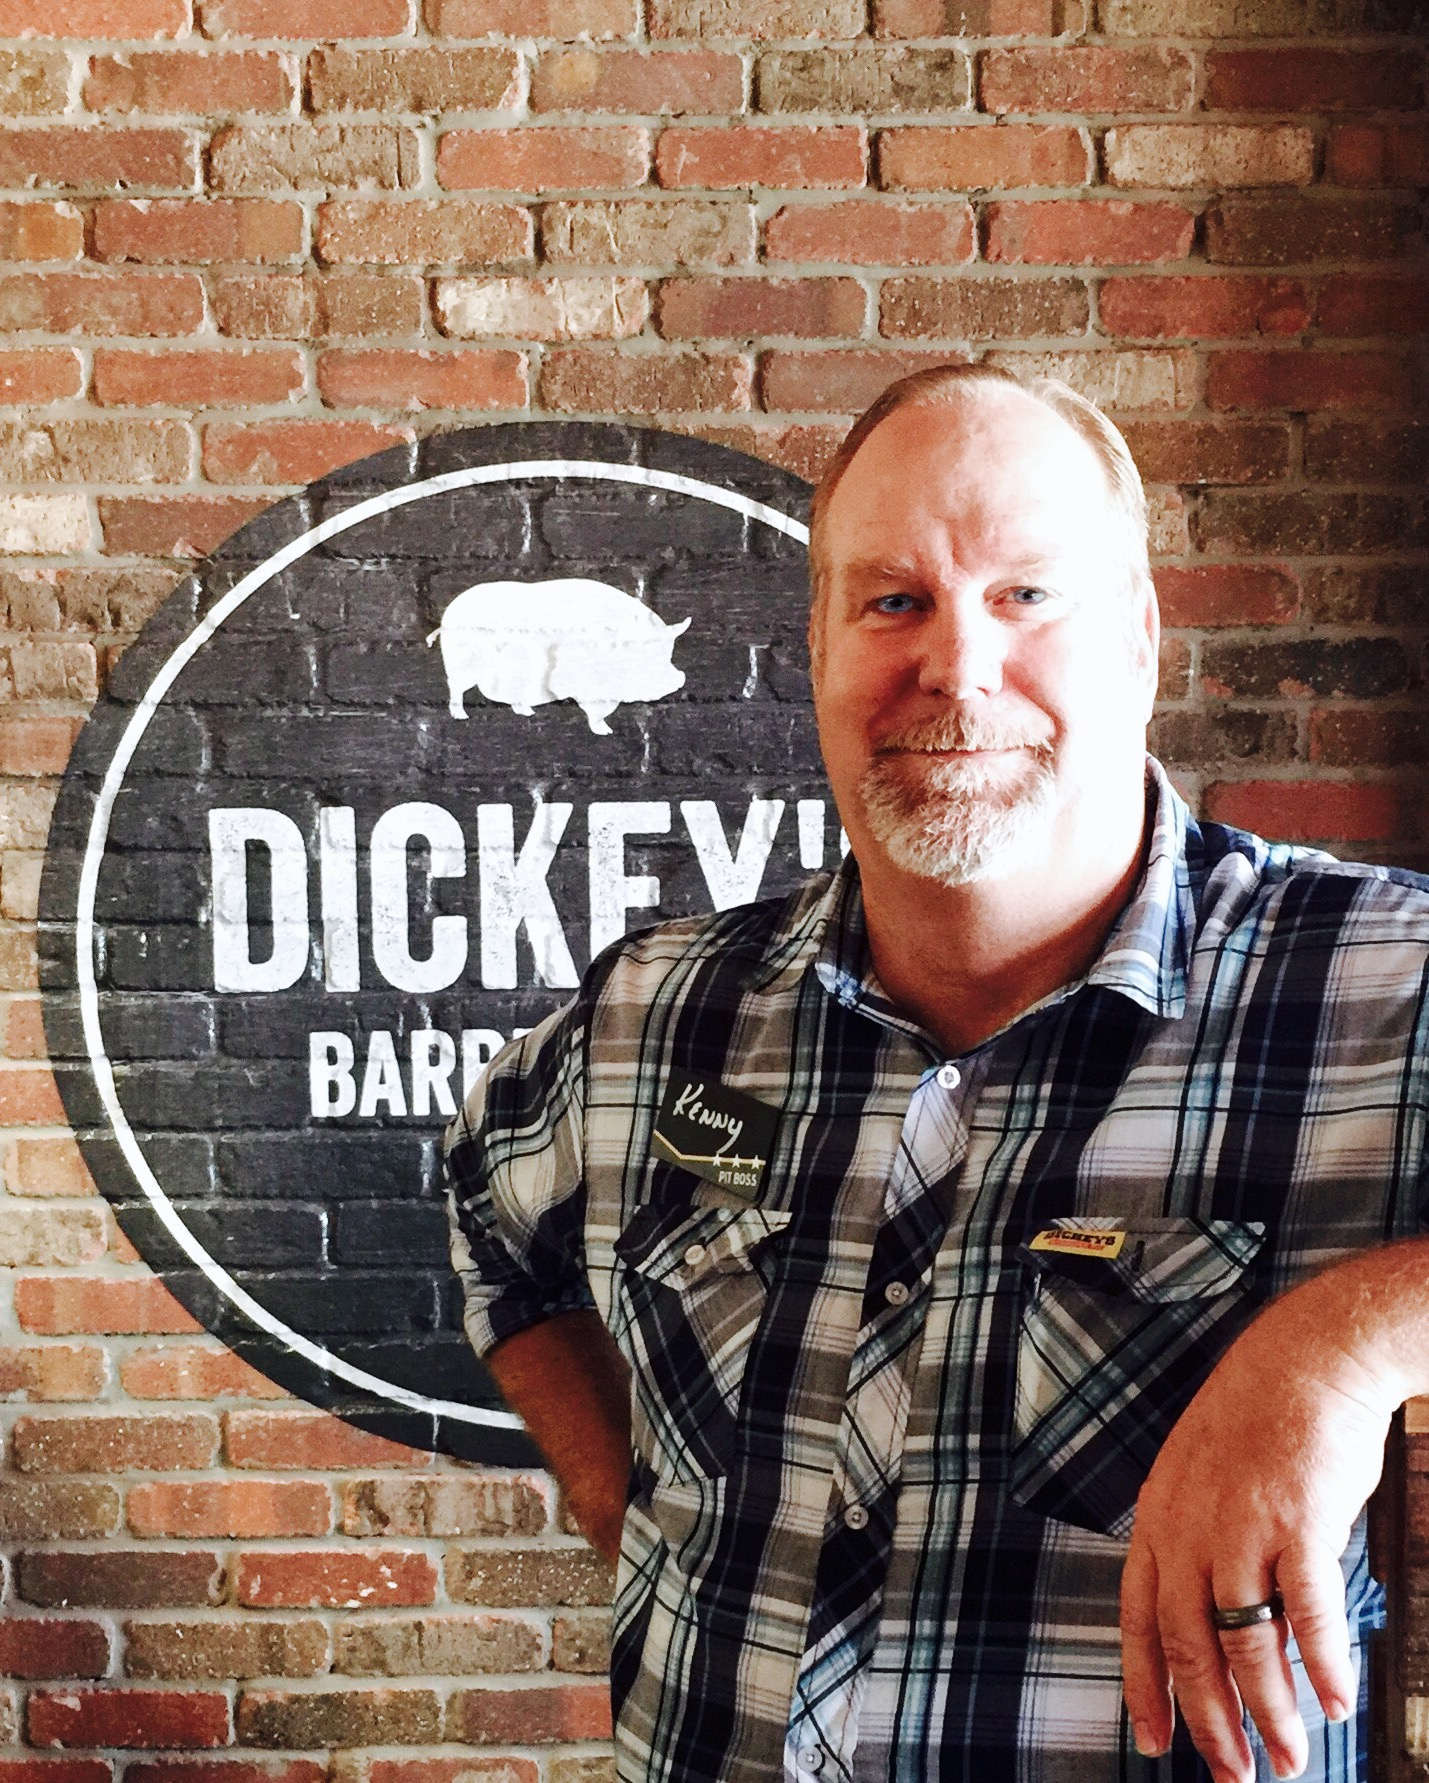 Dickey's Barbecue Pit Brings a New Fast Casual Barbecue Option to New Braunfels